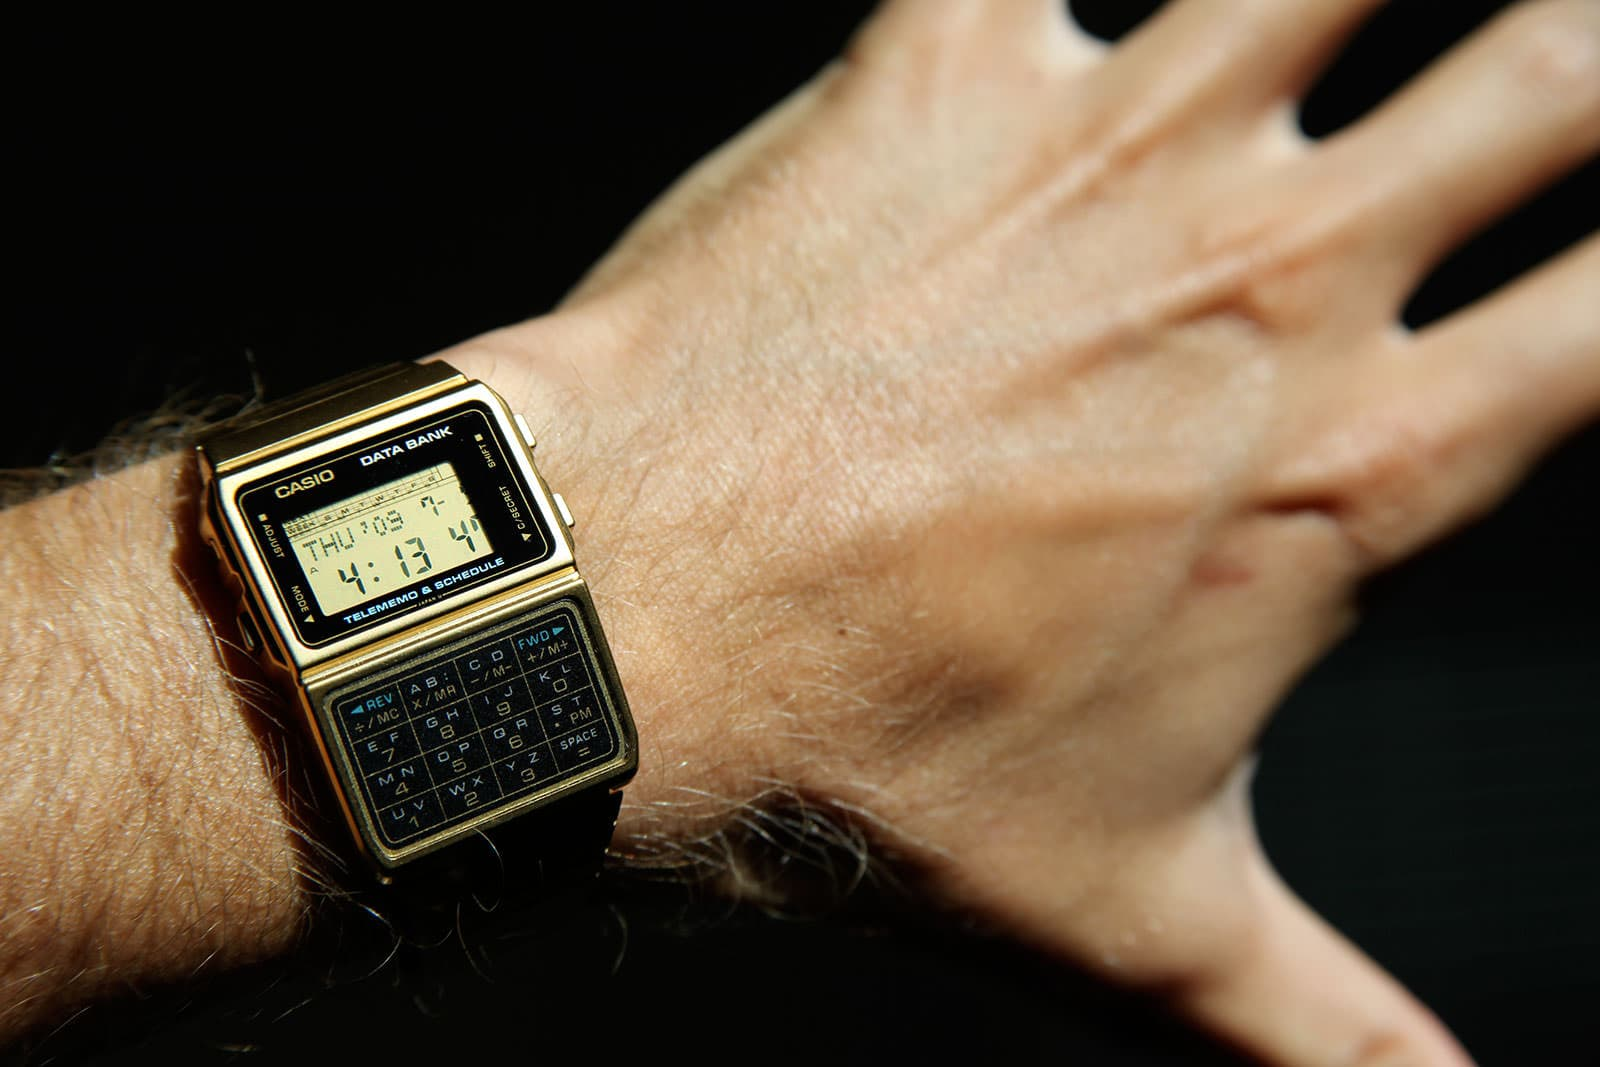 Smart watches & wearables – what's all the fuss about?